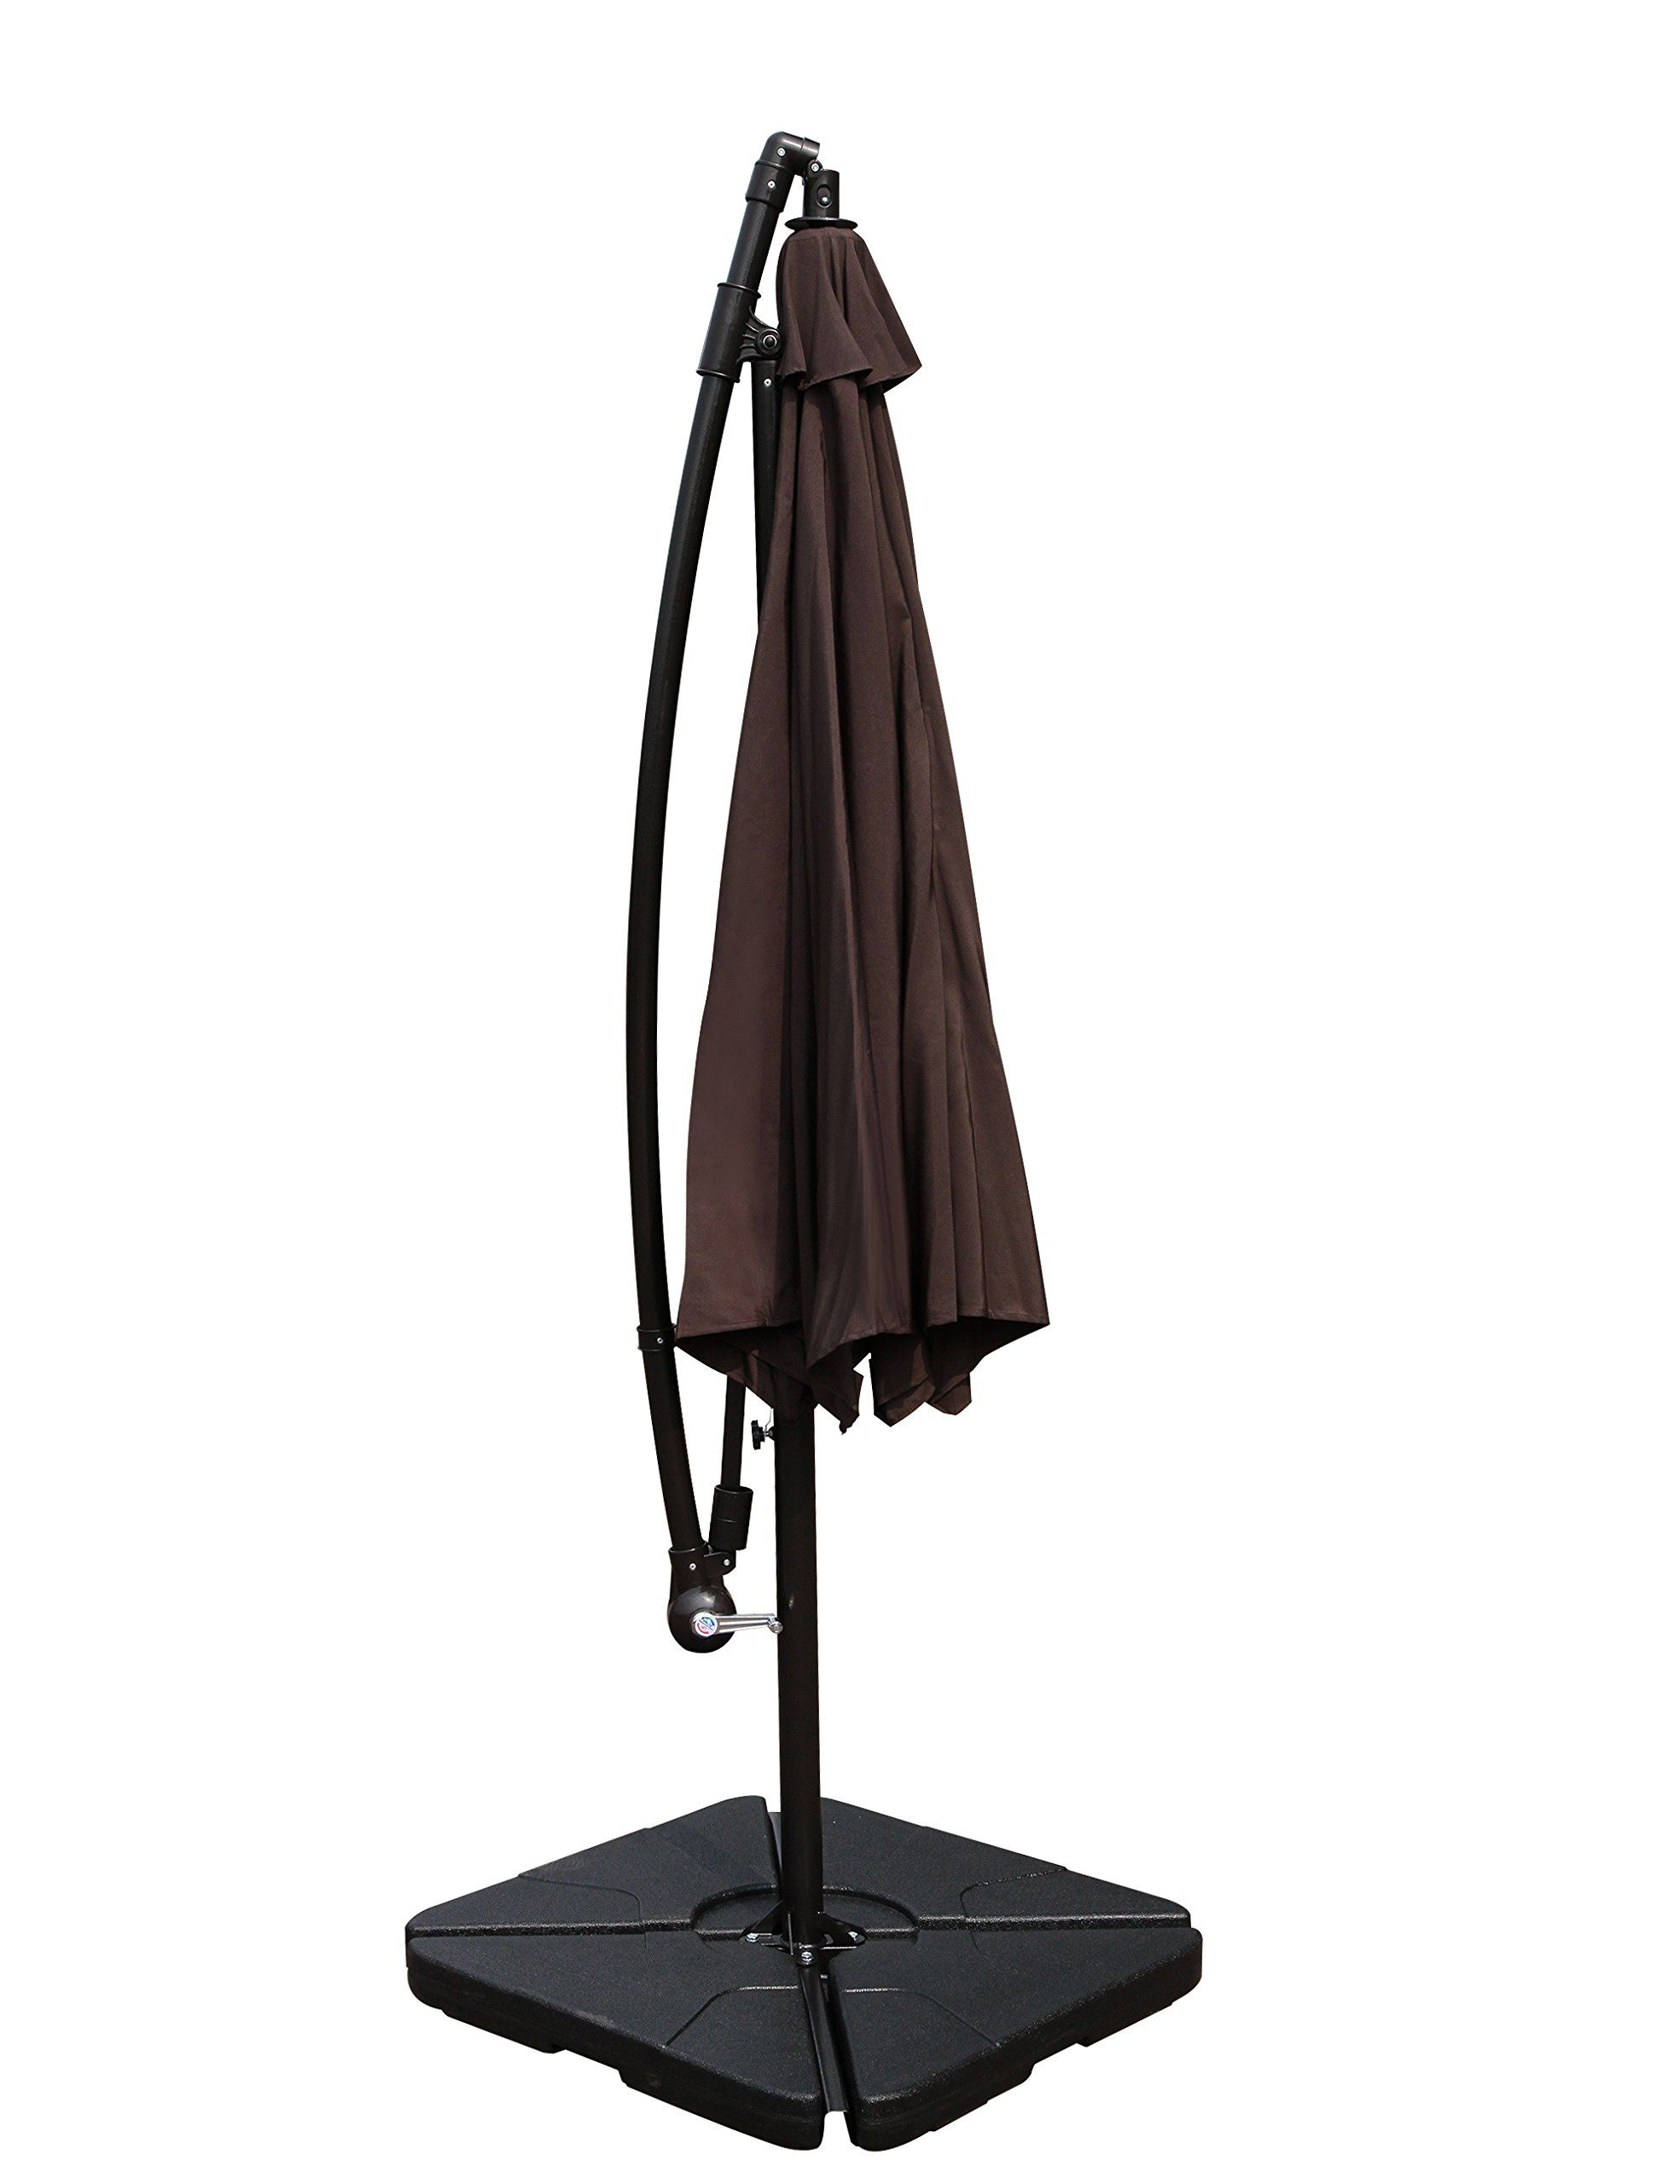 Patioroma Patio Cantilever Offset Umbrella Stand Weights For Cross